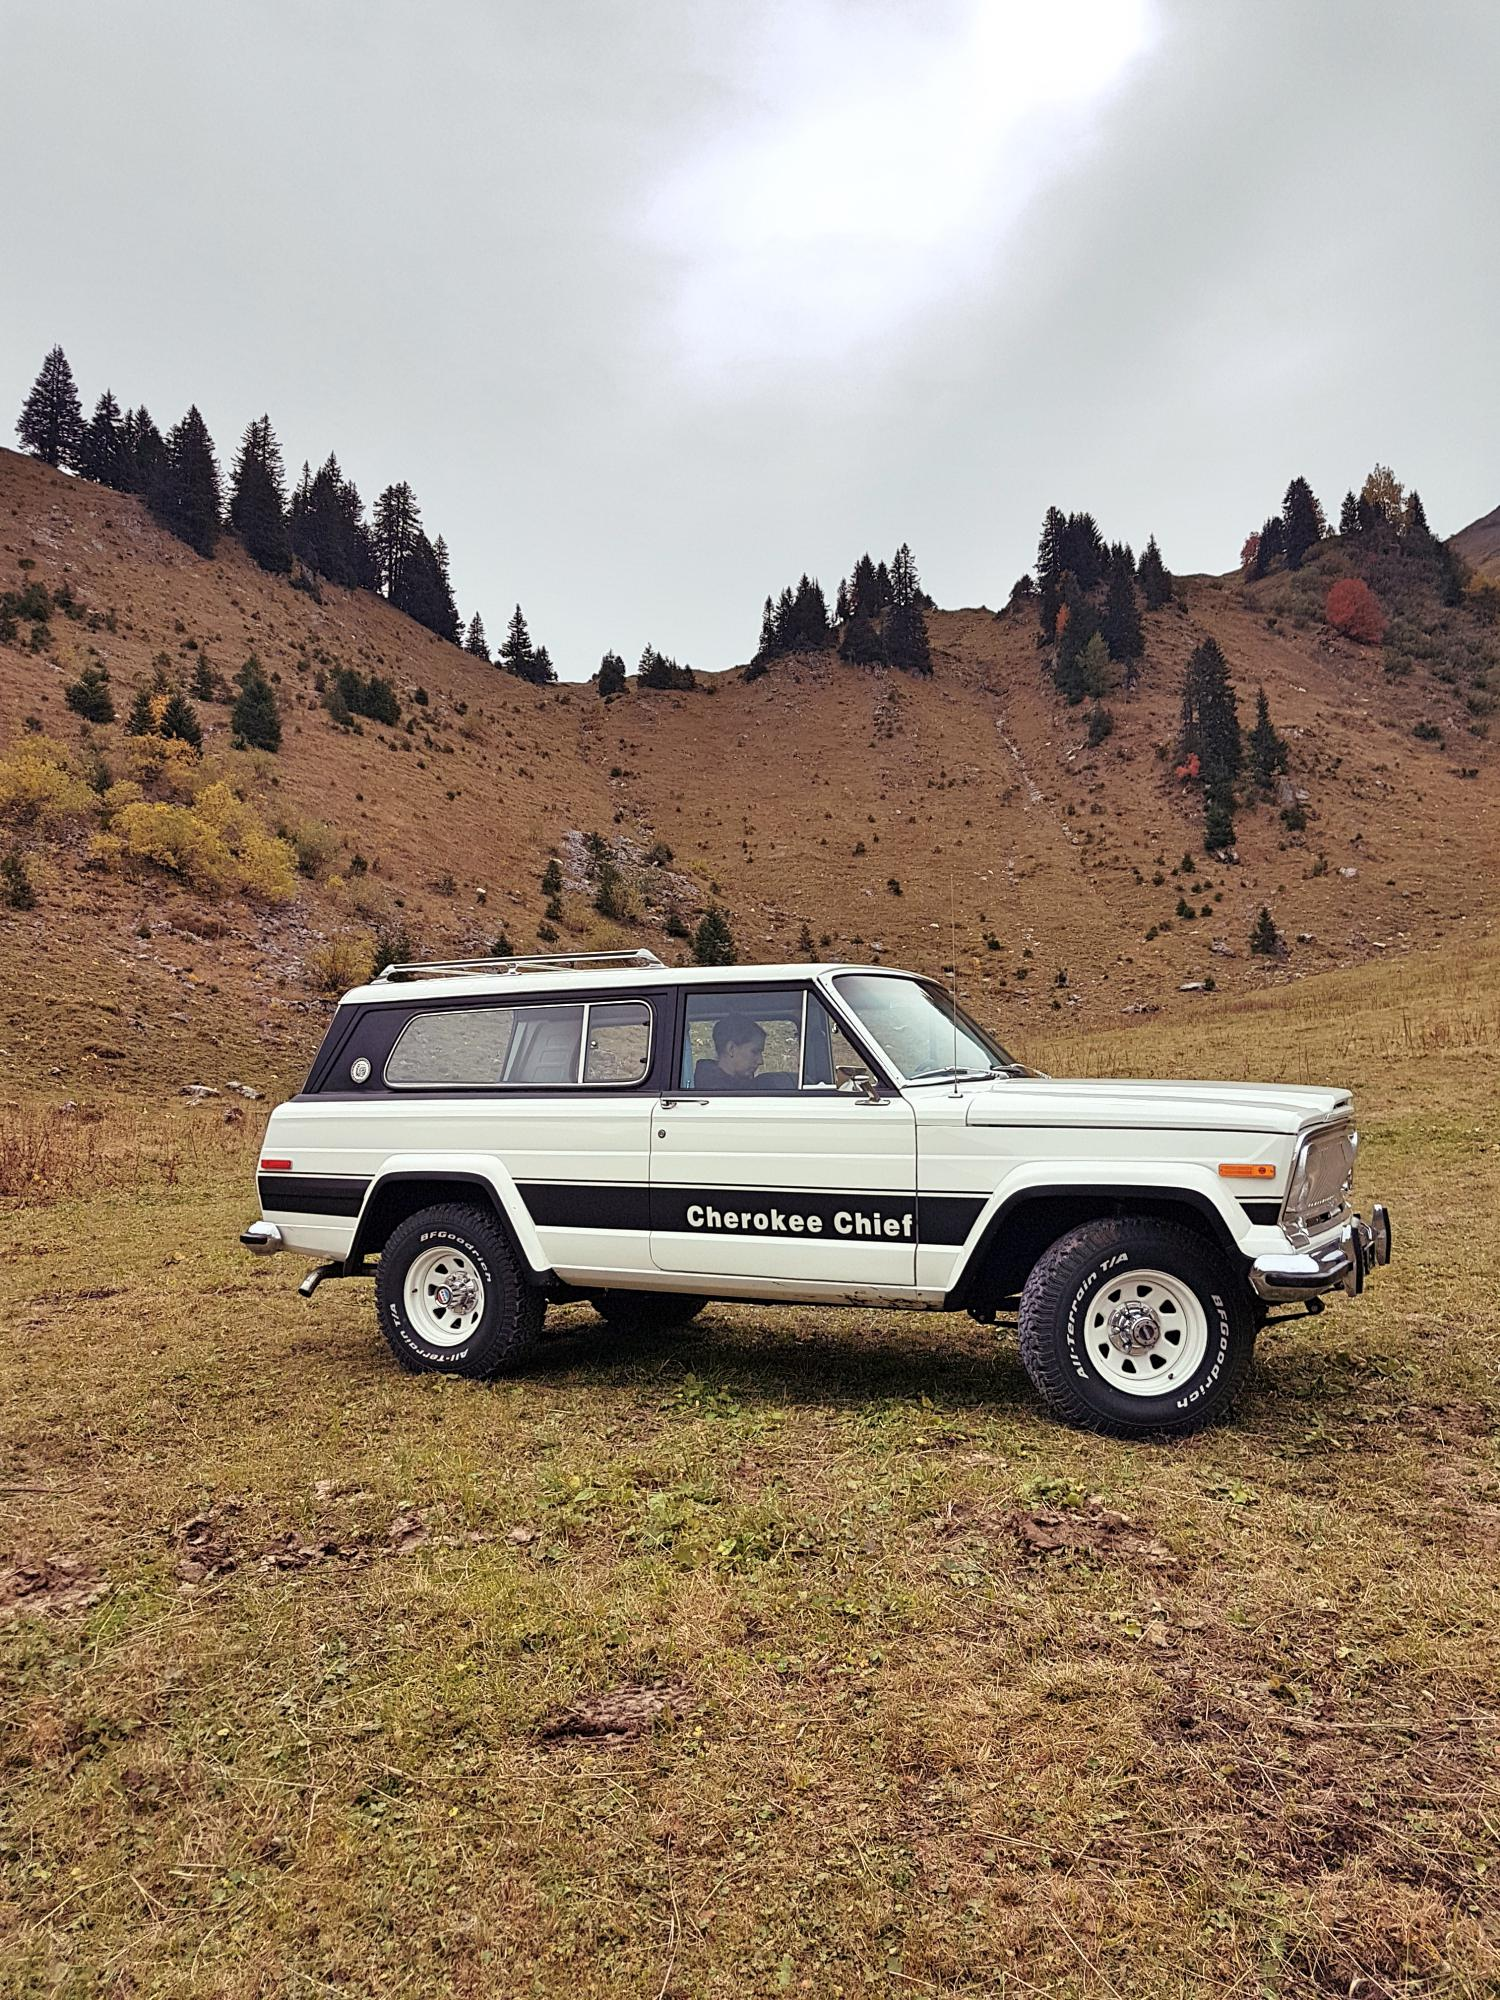 jeep-cherokee-chief-1978-shooting-morgins-switzerland-55.jpg